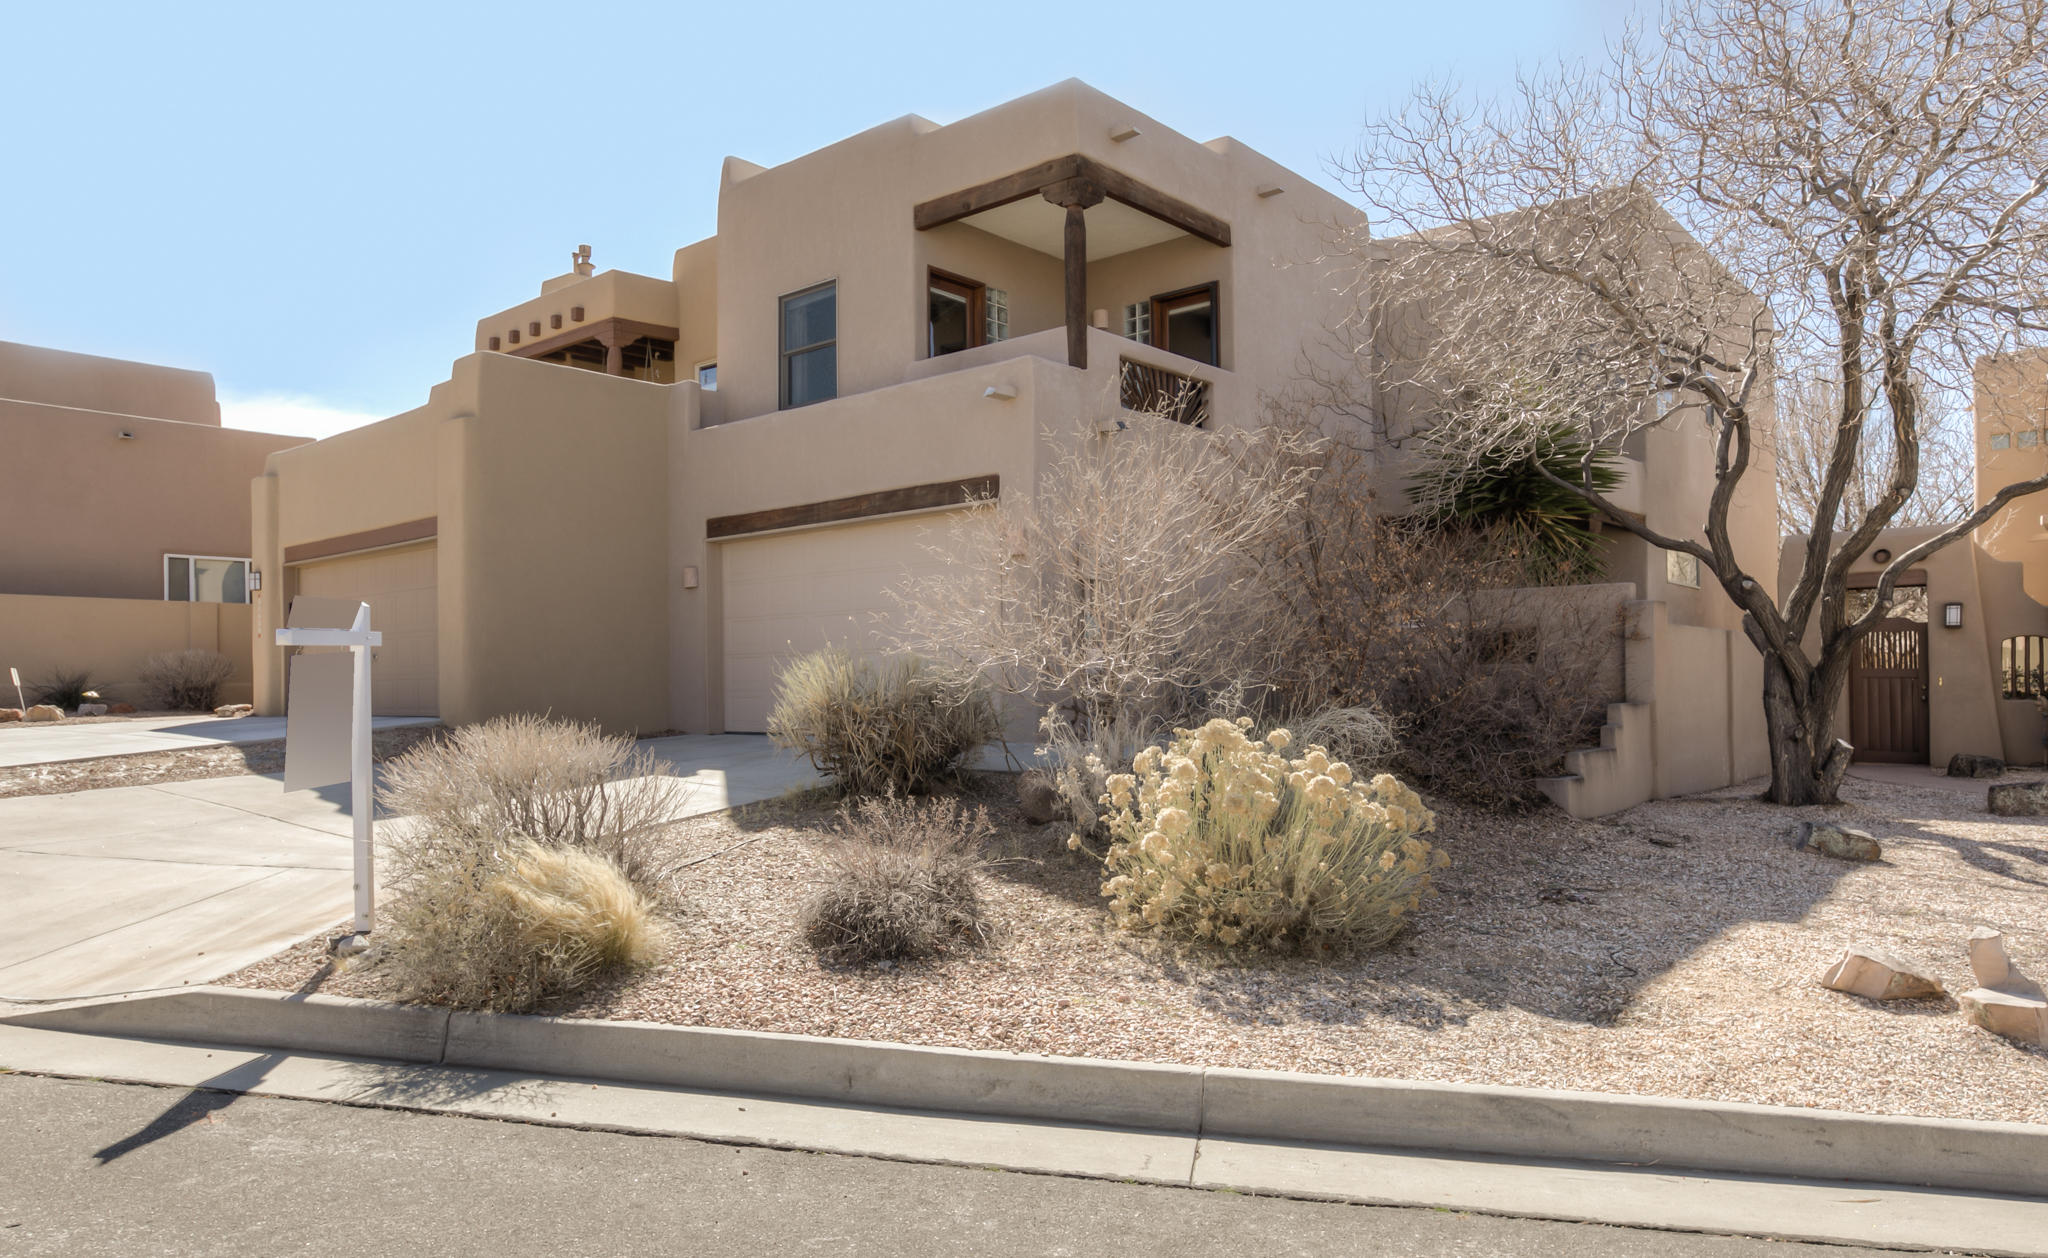 12700 NORTHERN SKY Avenue NE, Albuquerque, NM 87111 - Albuquerque, NM real estate listing